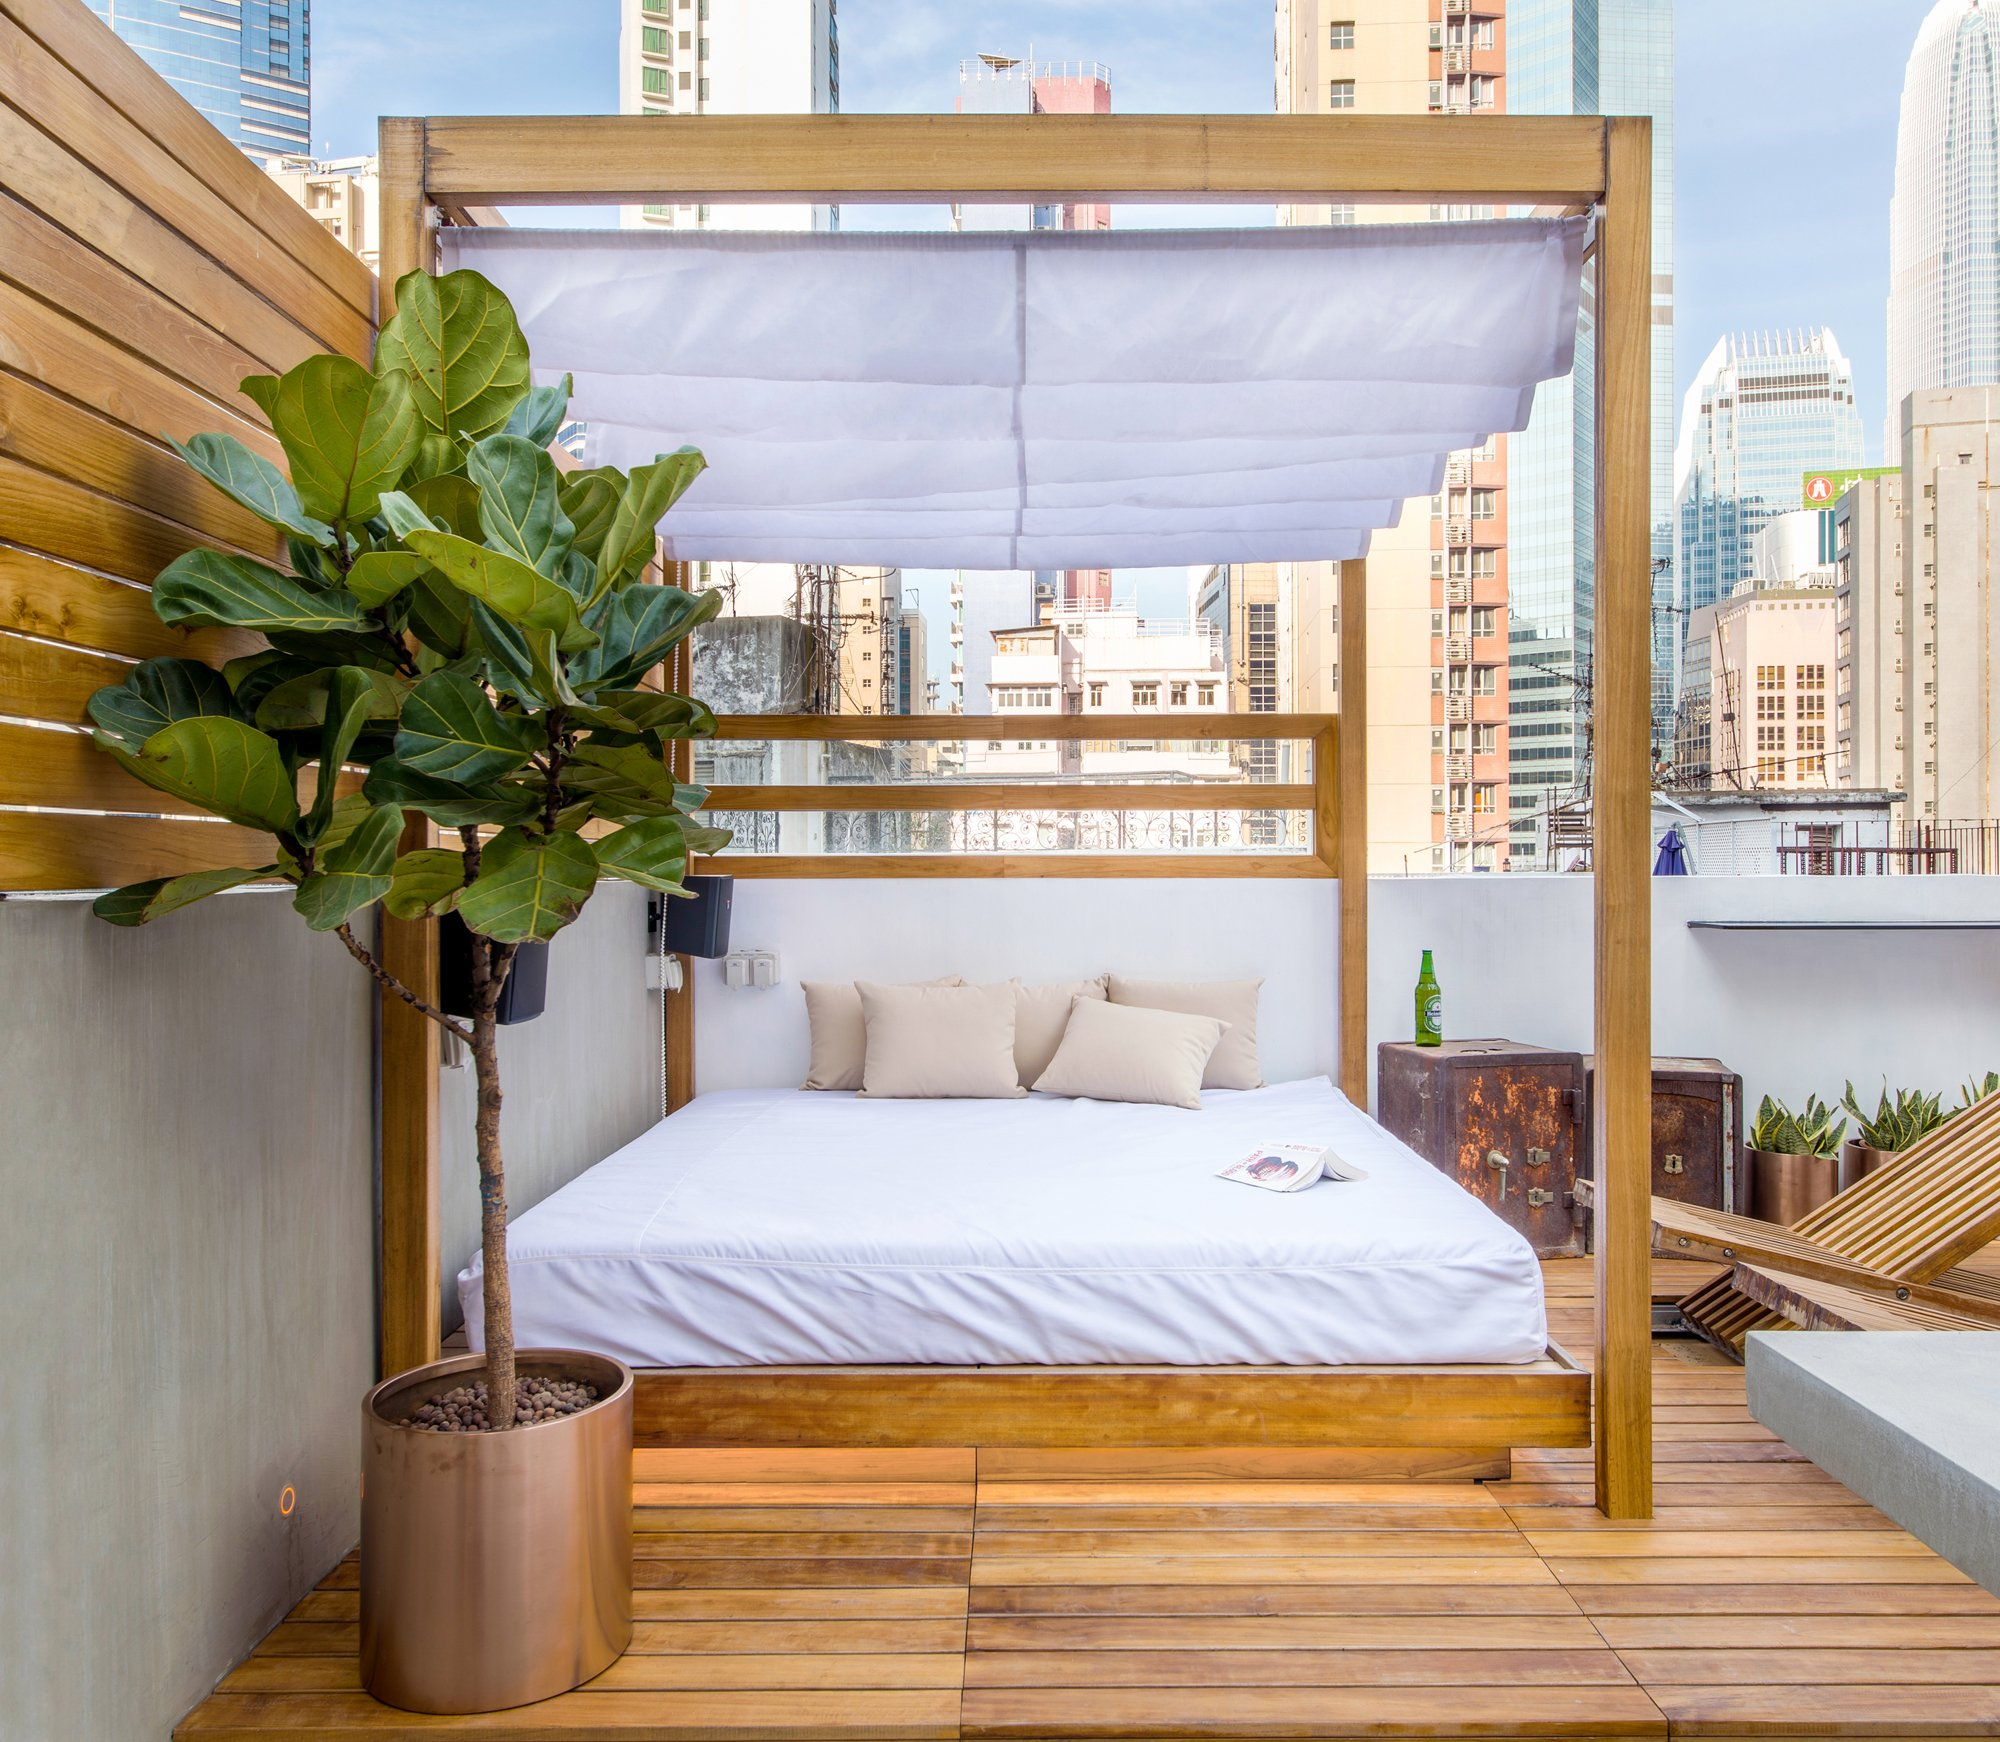 Rooftop The teak-framed bed is designed both for sunbathing and shade with a retractable cloth awning (HK$24000; Mark III Design and Contracting ... & How Hong Kong walk-up flat became a hi-tech rooftop retreat | Post ...